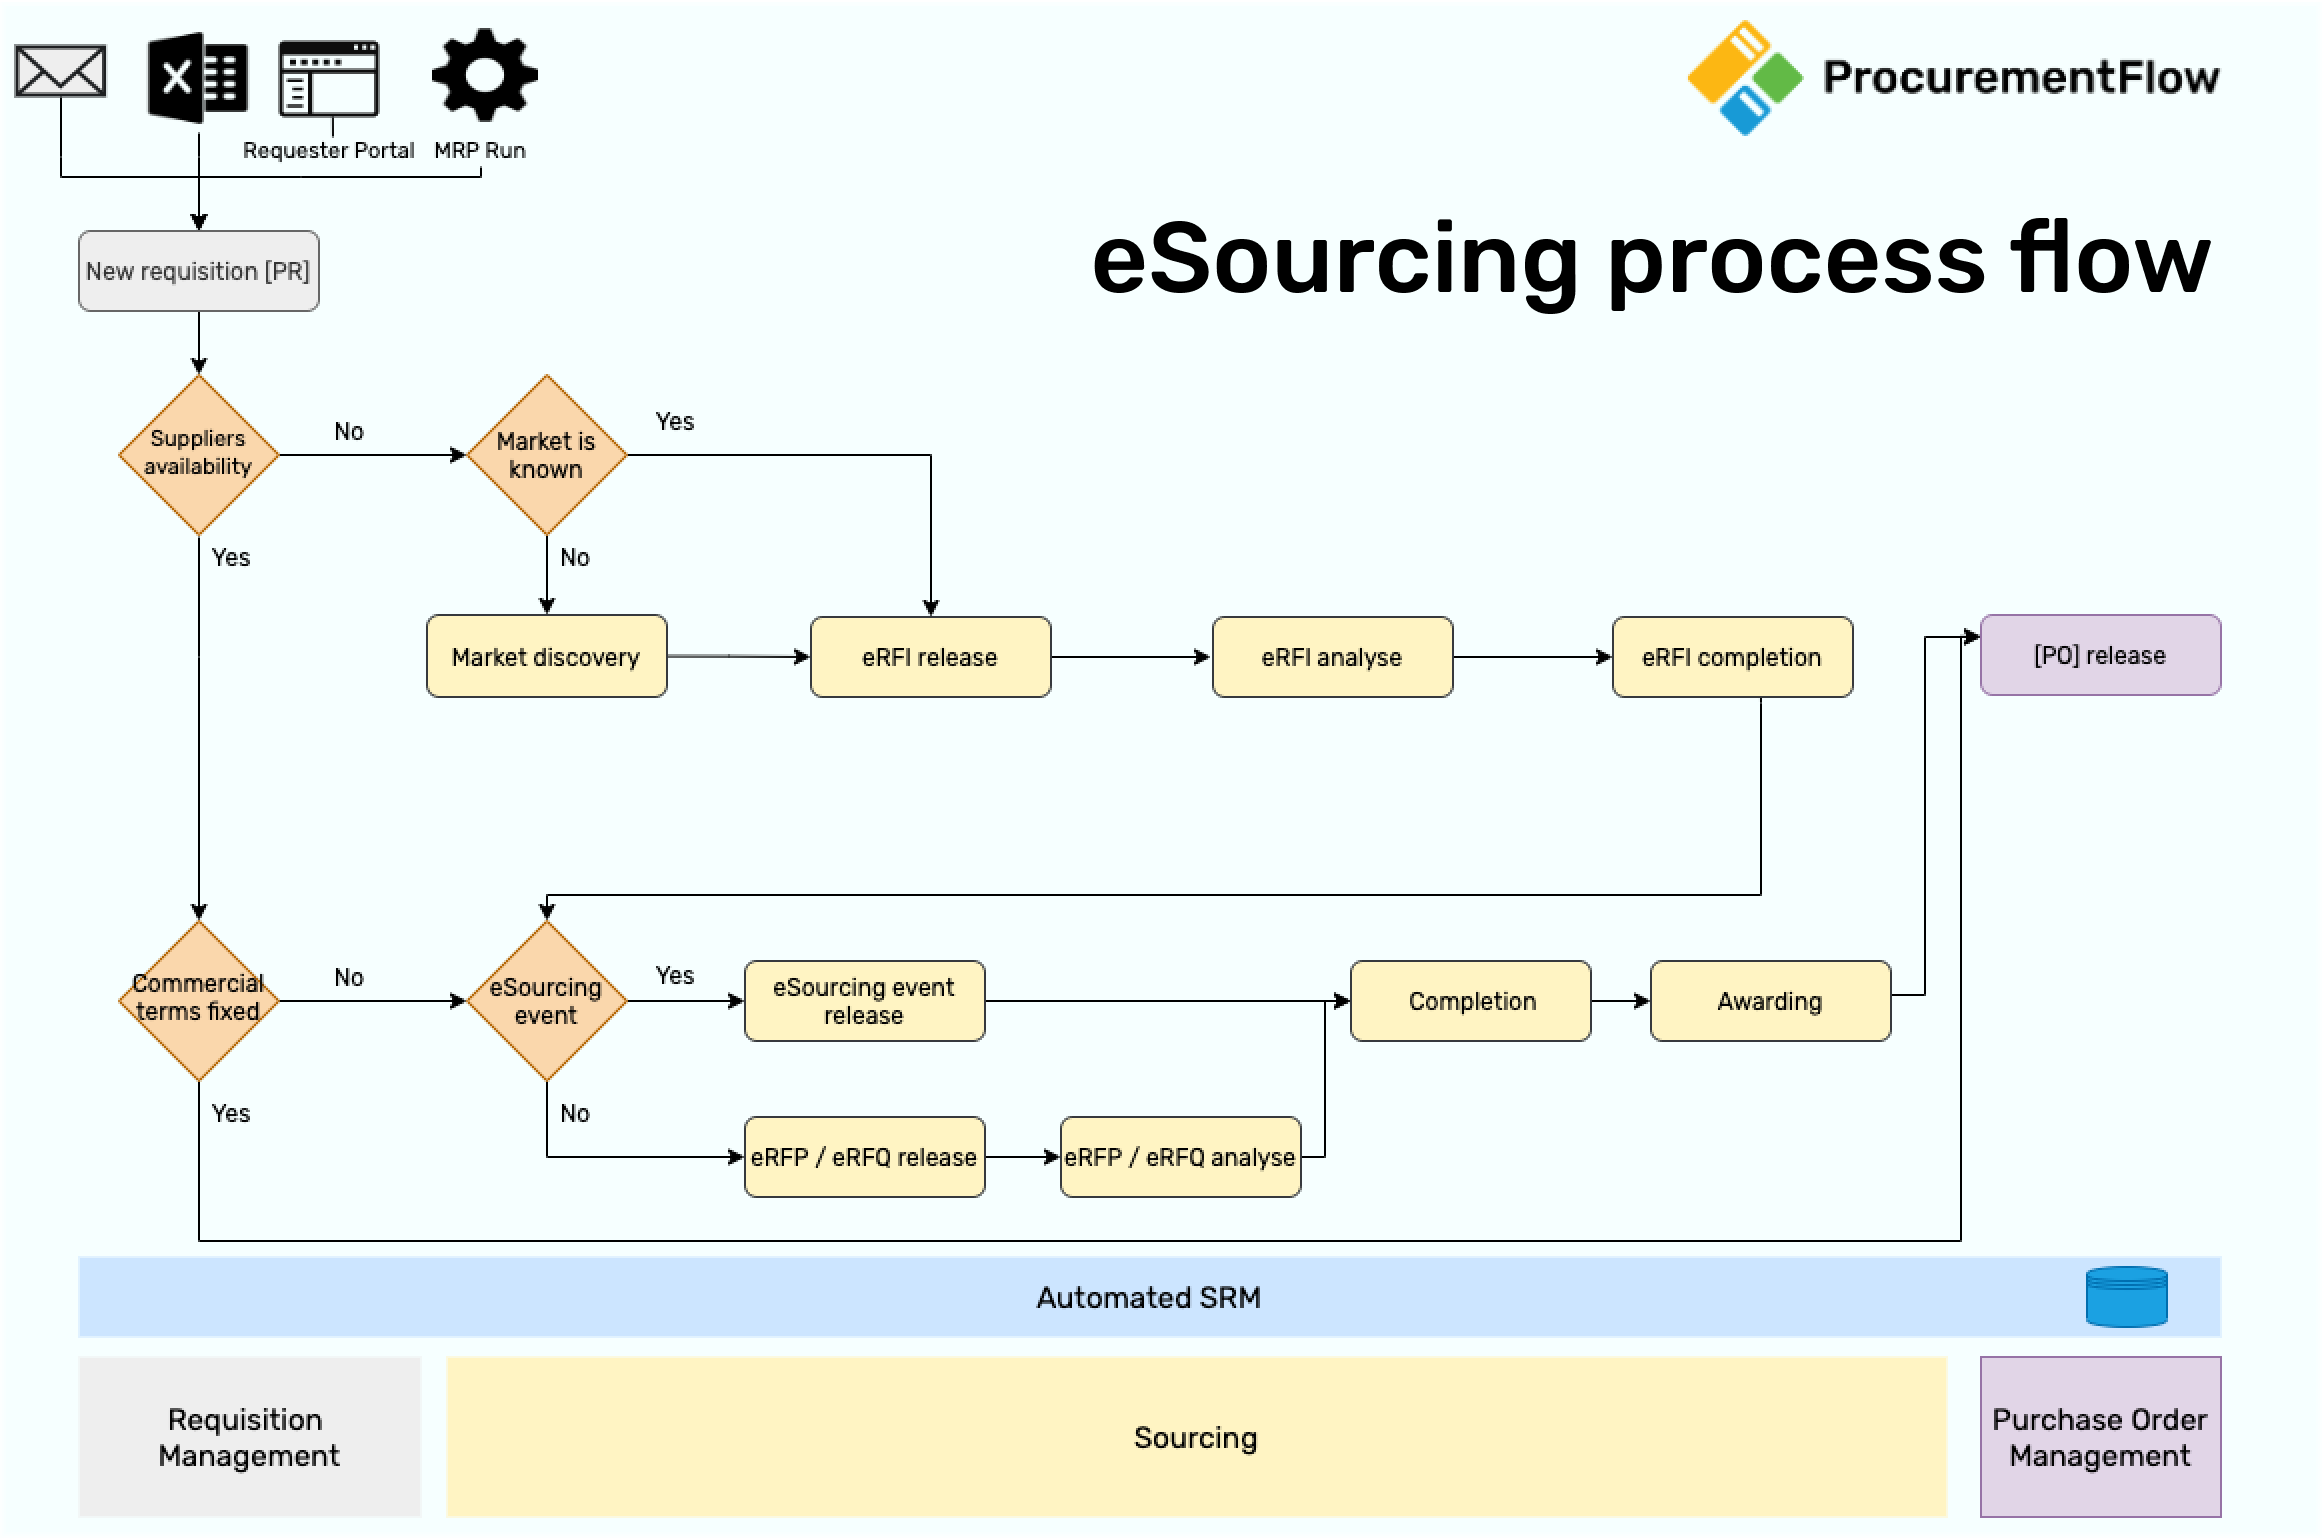 eSourcing process